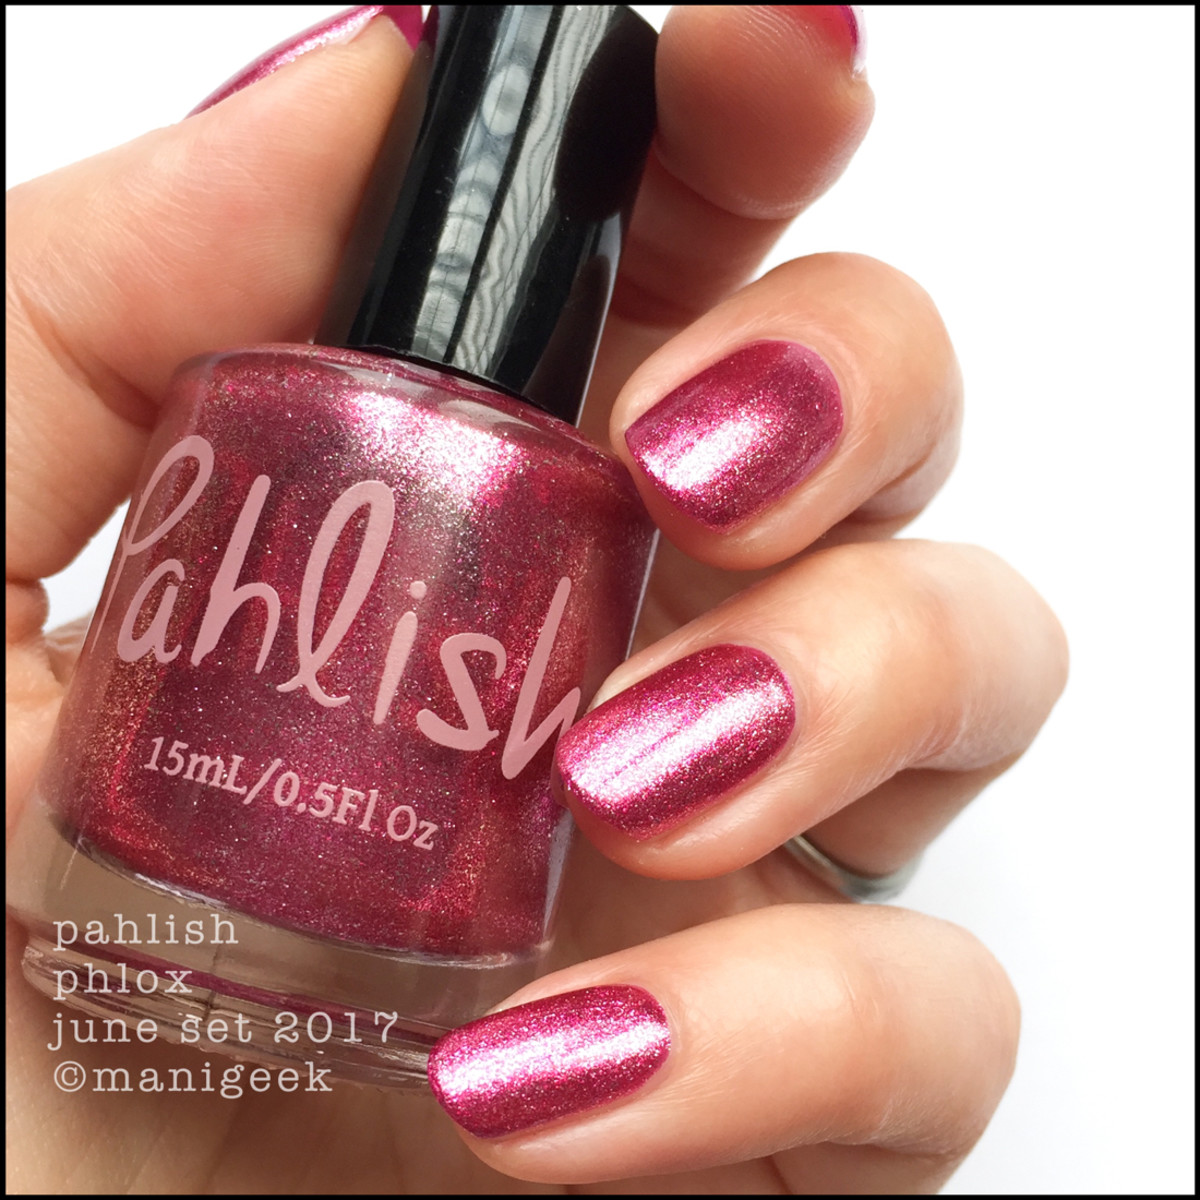 Pahlish Phlox - Pahlish June 2017 Collection Swatches